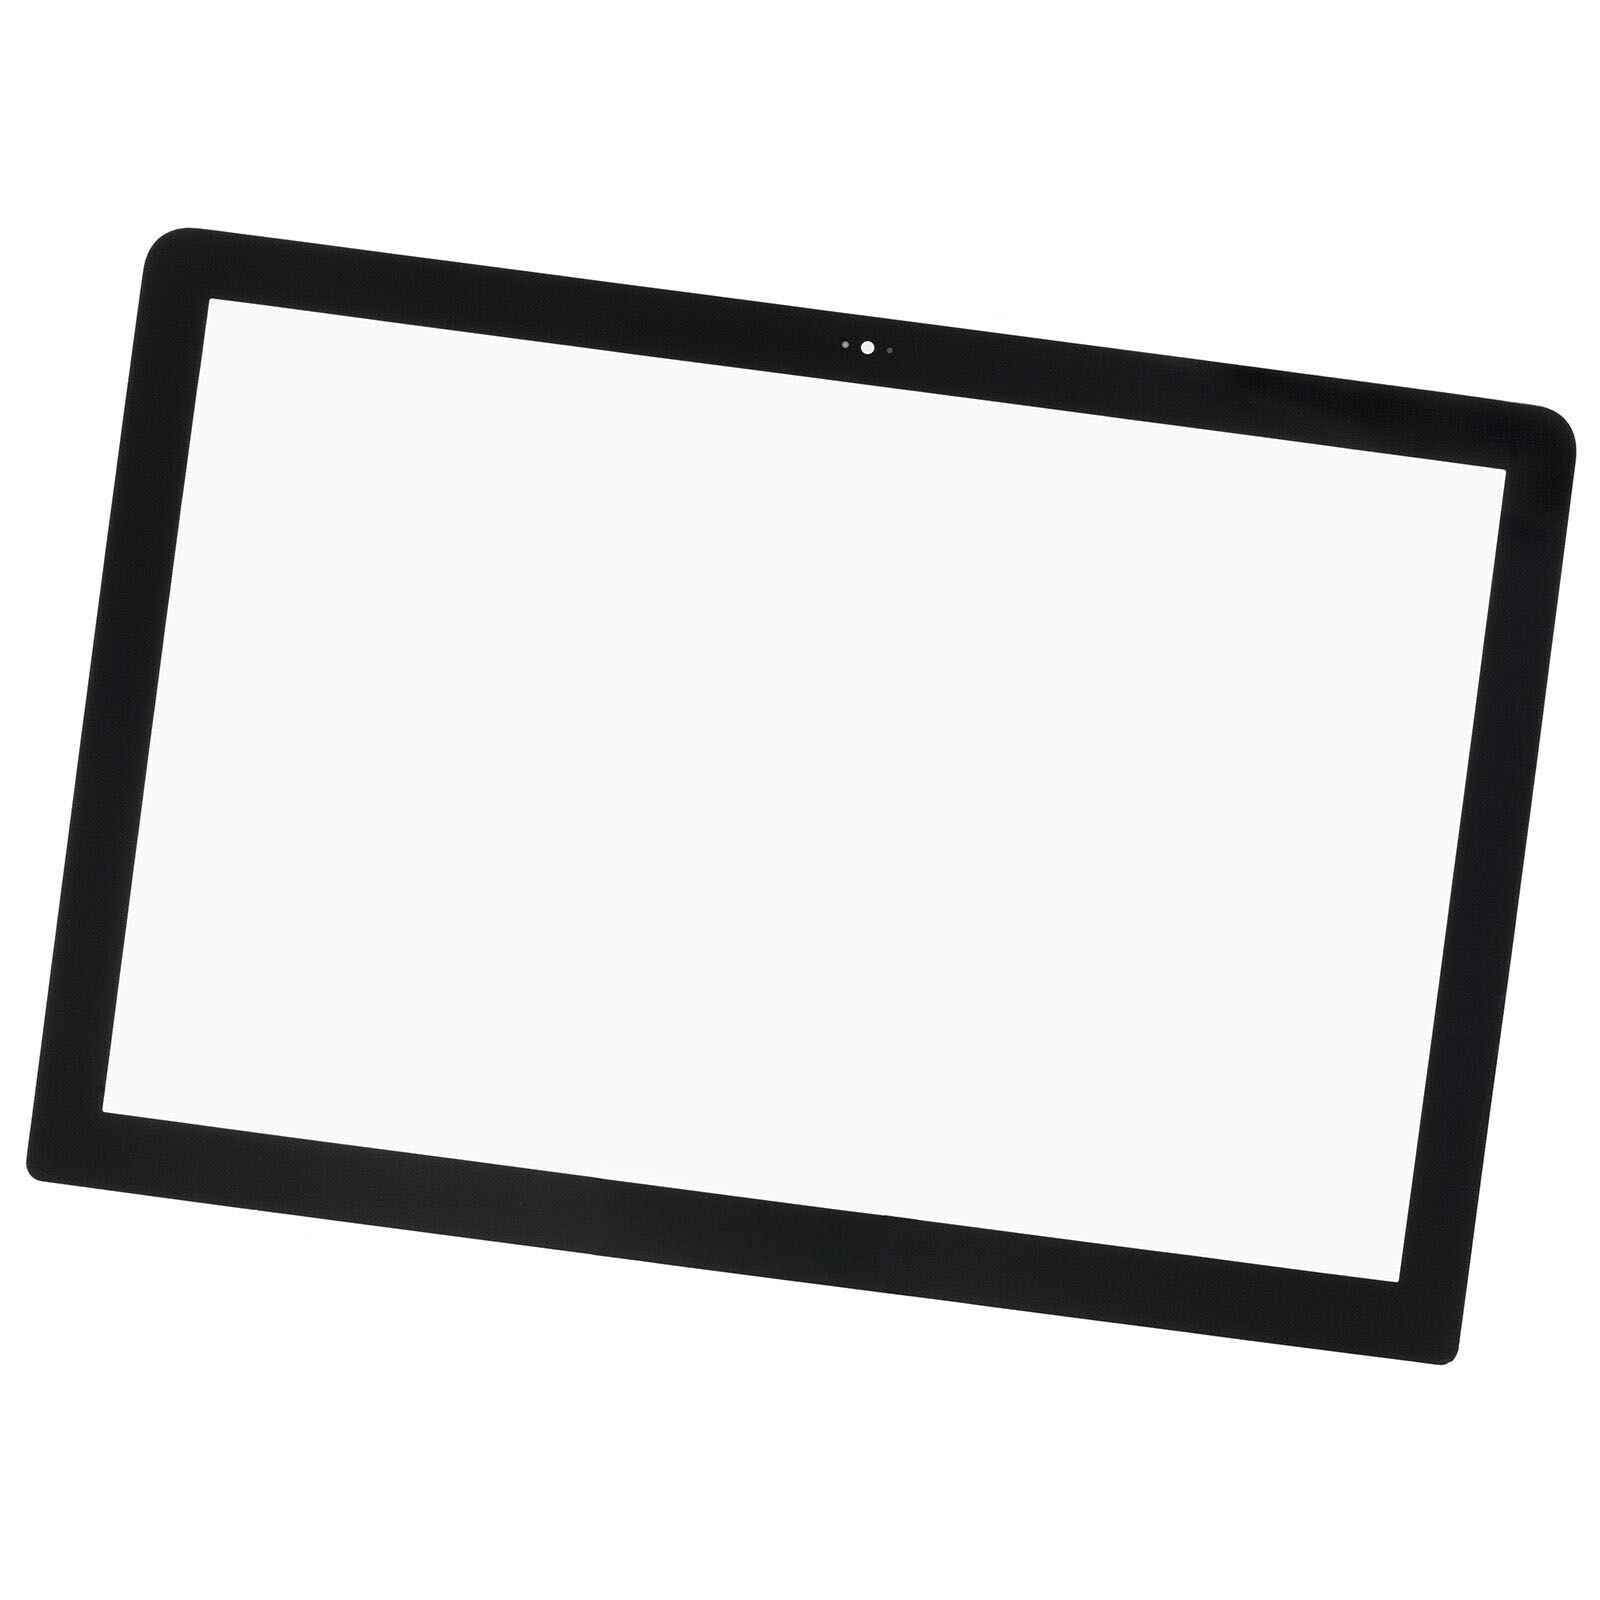 "3pcs/lot New 13"" Front LCD Glass Screen For Apple Macbook Pro A1278 Touch Digitizer Sensor Replacement Parts 2008-2013 year"